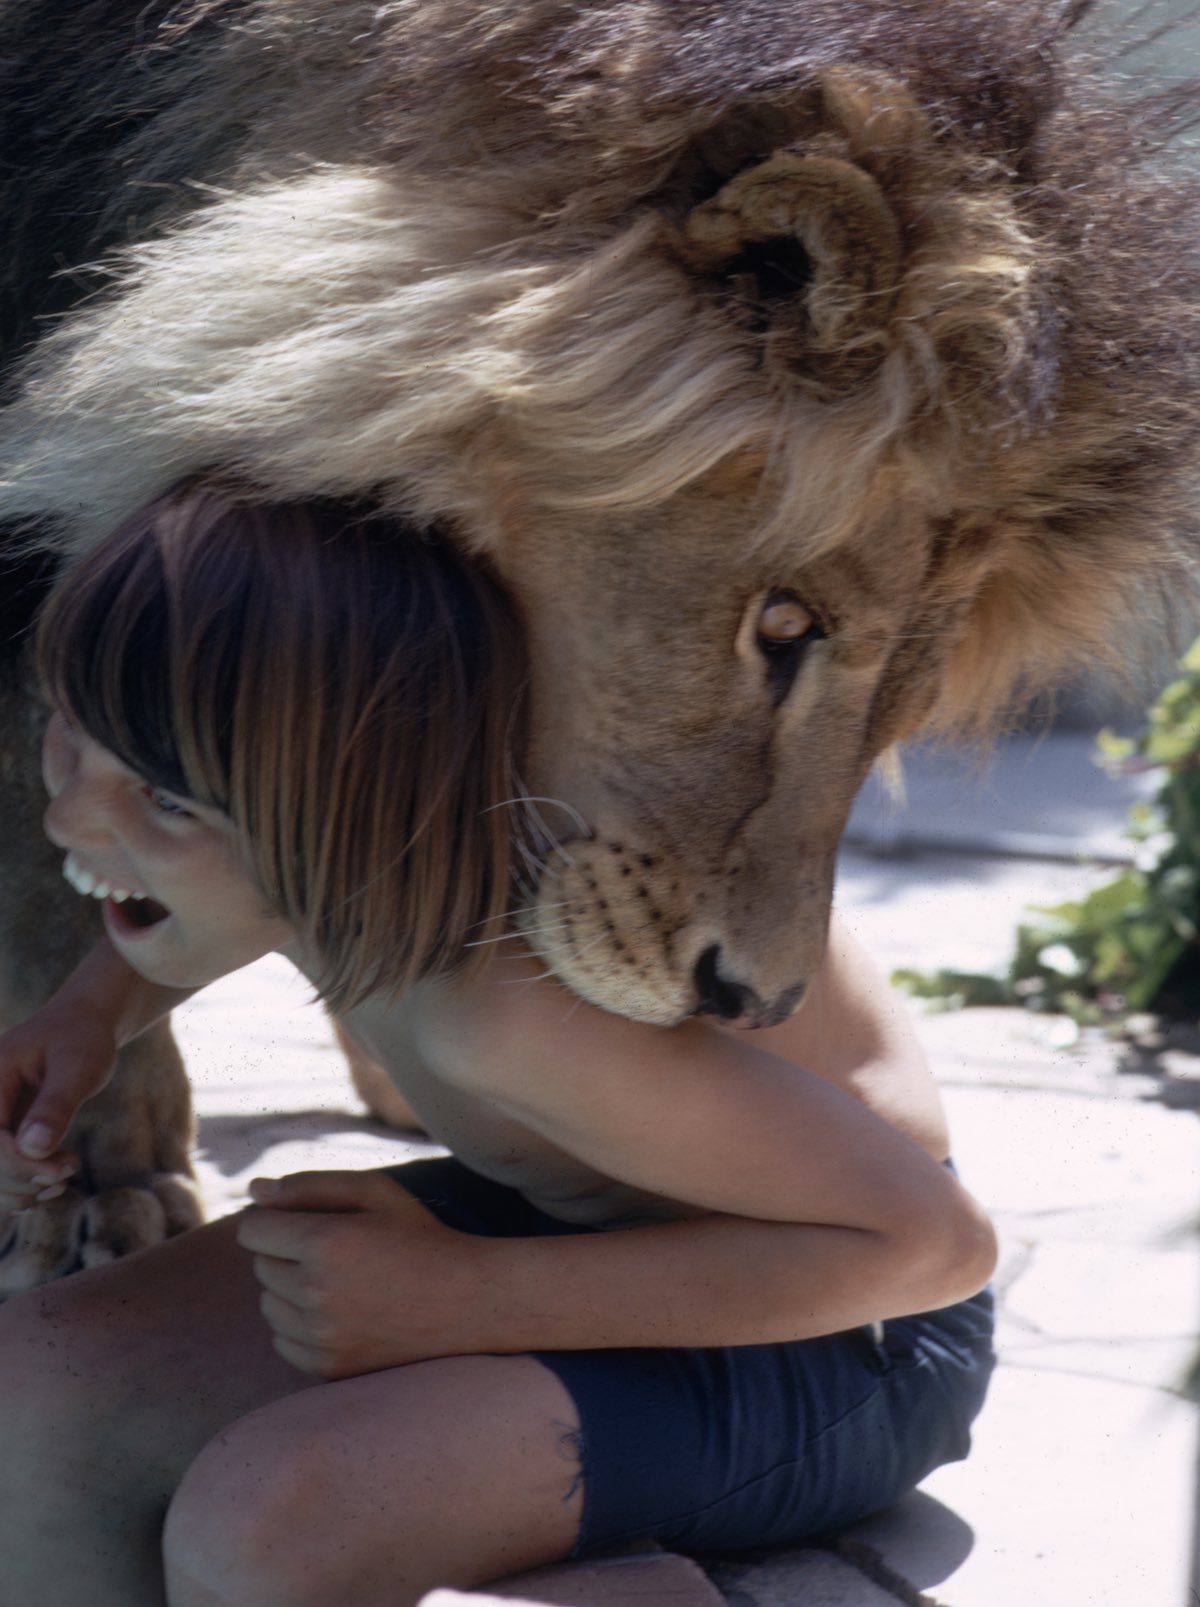 Subject: Tippi Hedren and Noel Marshall's pet Lion playing with a child by the pool side.  This might be one of Noel Marshall's sons but it's unclear. Sherman Oaks, California May 1971 Photographer- Michael Rougier Time Inc Owned Merlin- 1200546